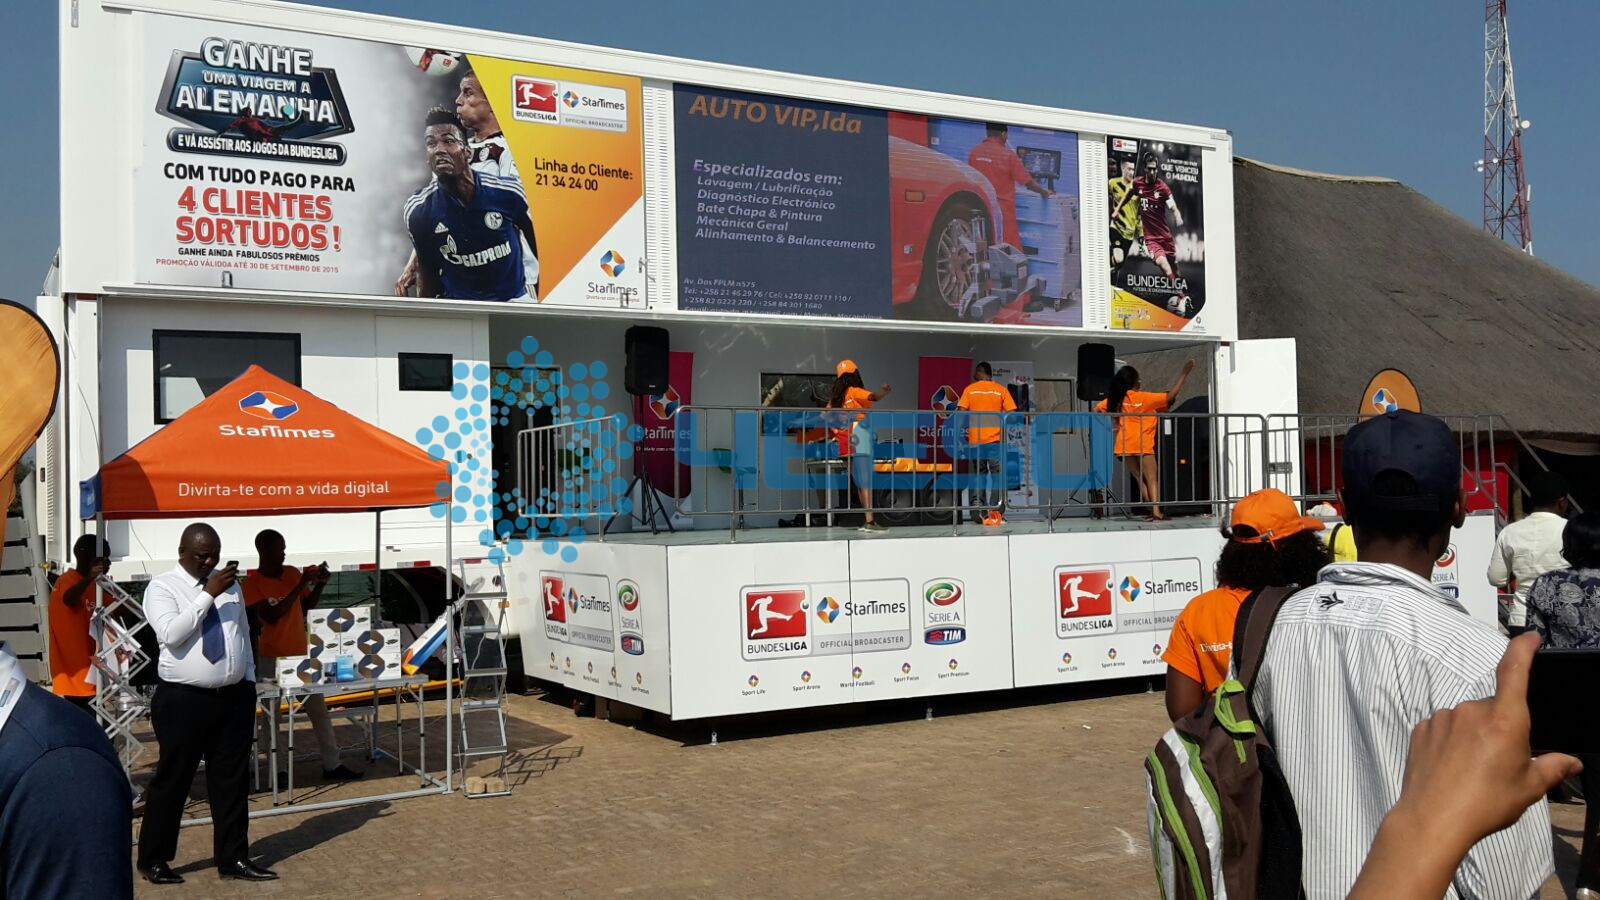 Mozambique YES-C40 mobile stage truck for public benefit